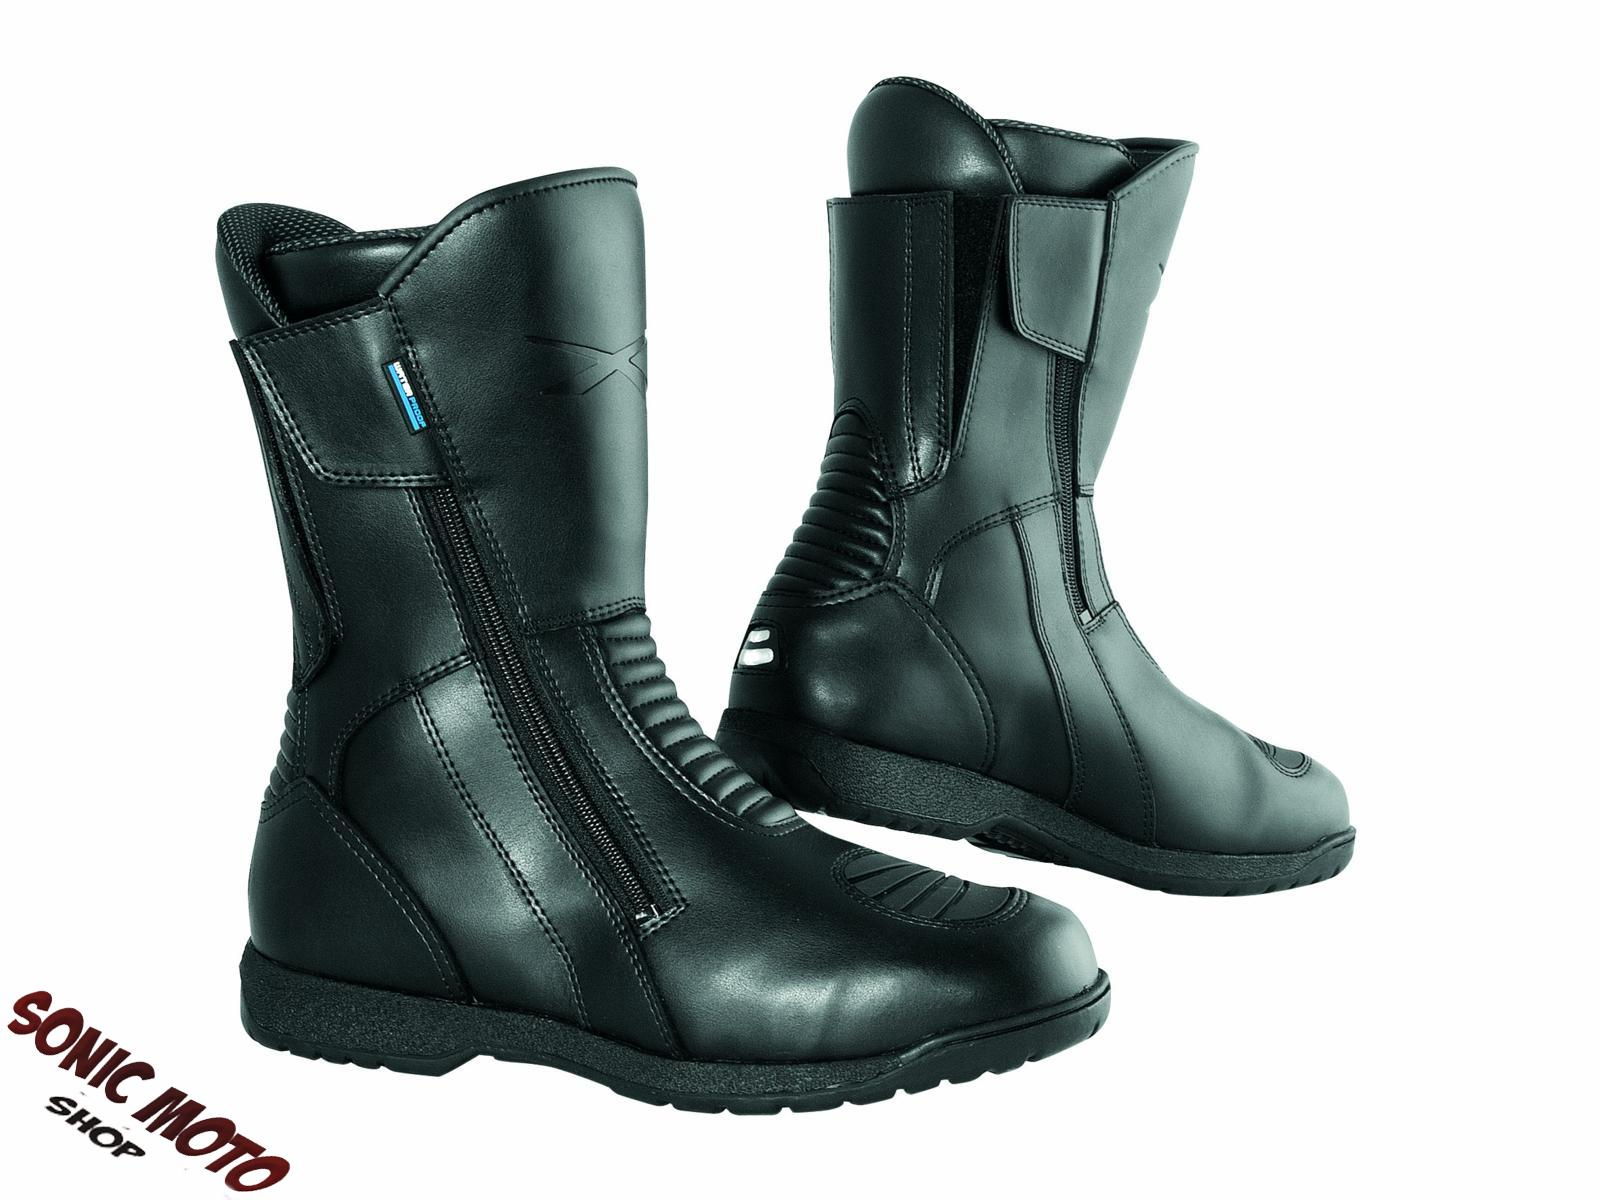 bottes motard cuir moto piste scooter impermeable custom homme chaussures ebay. Black Bedroom Furniture Sets. Home Design Ideas